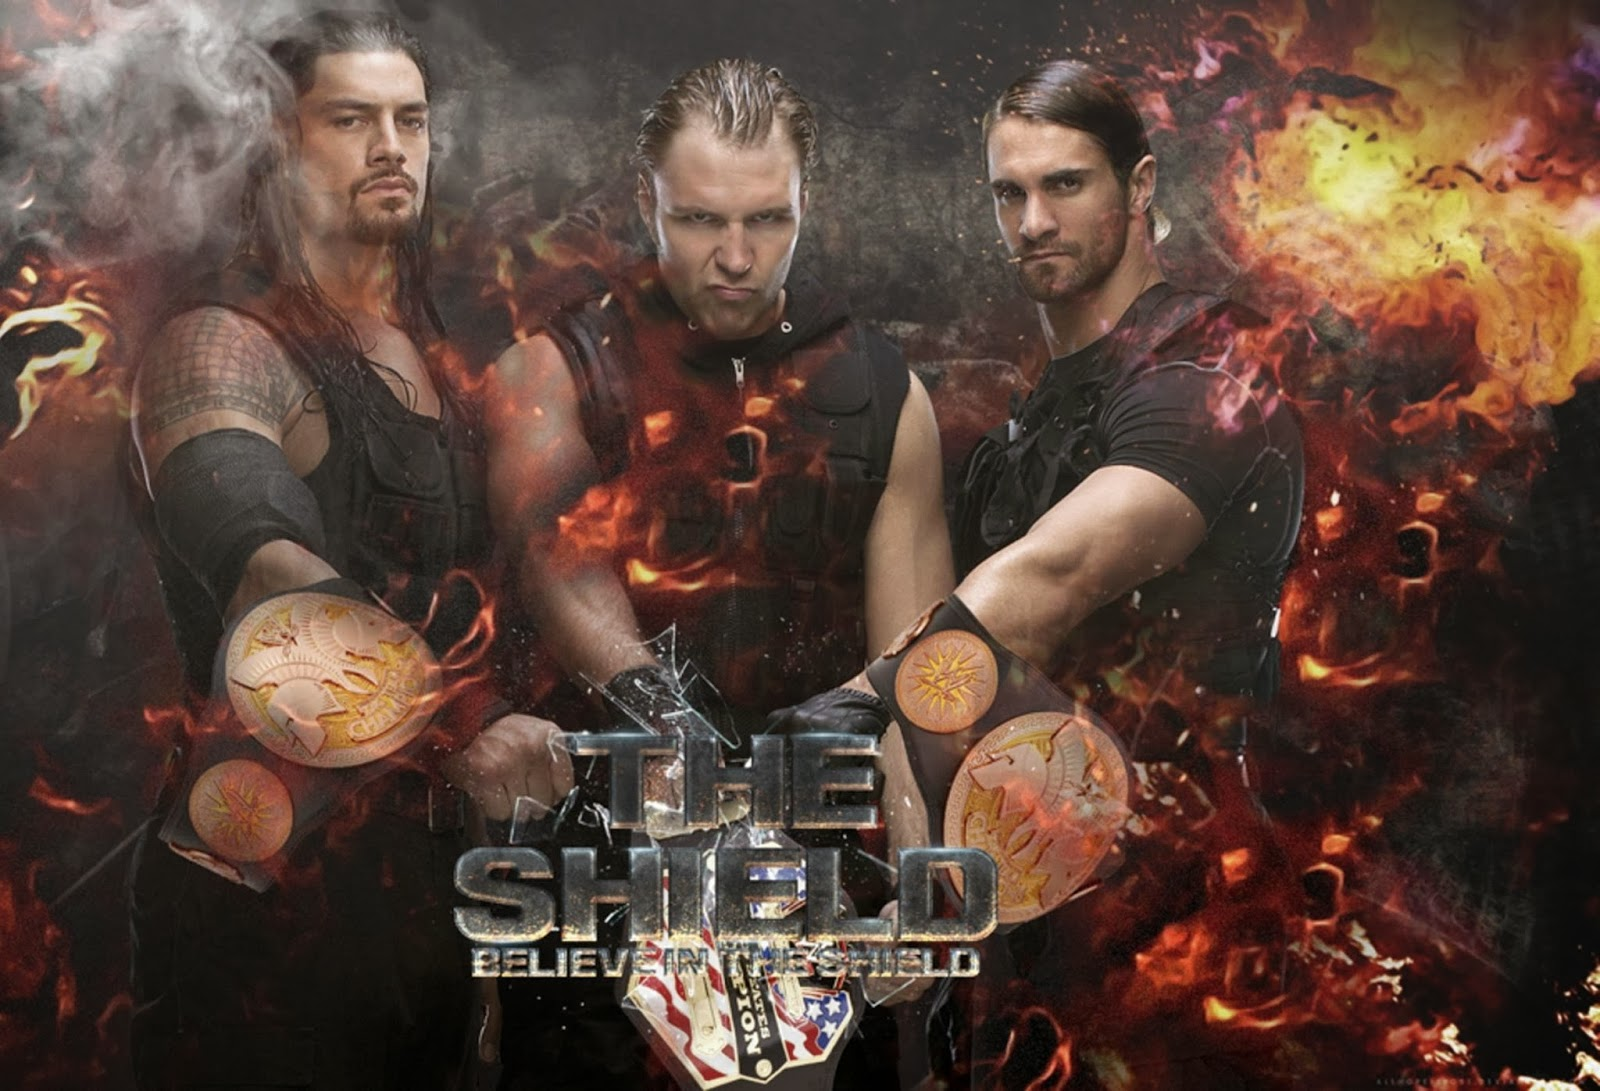 The Shield Hd Wallpapers Download WWE HD WALLPAPER FREE 1600x1091